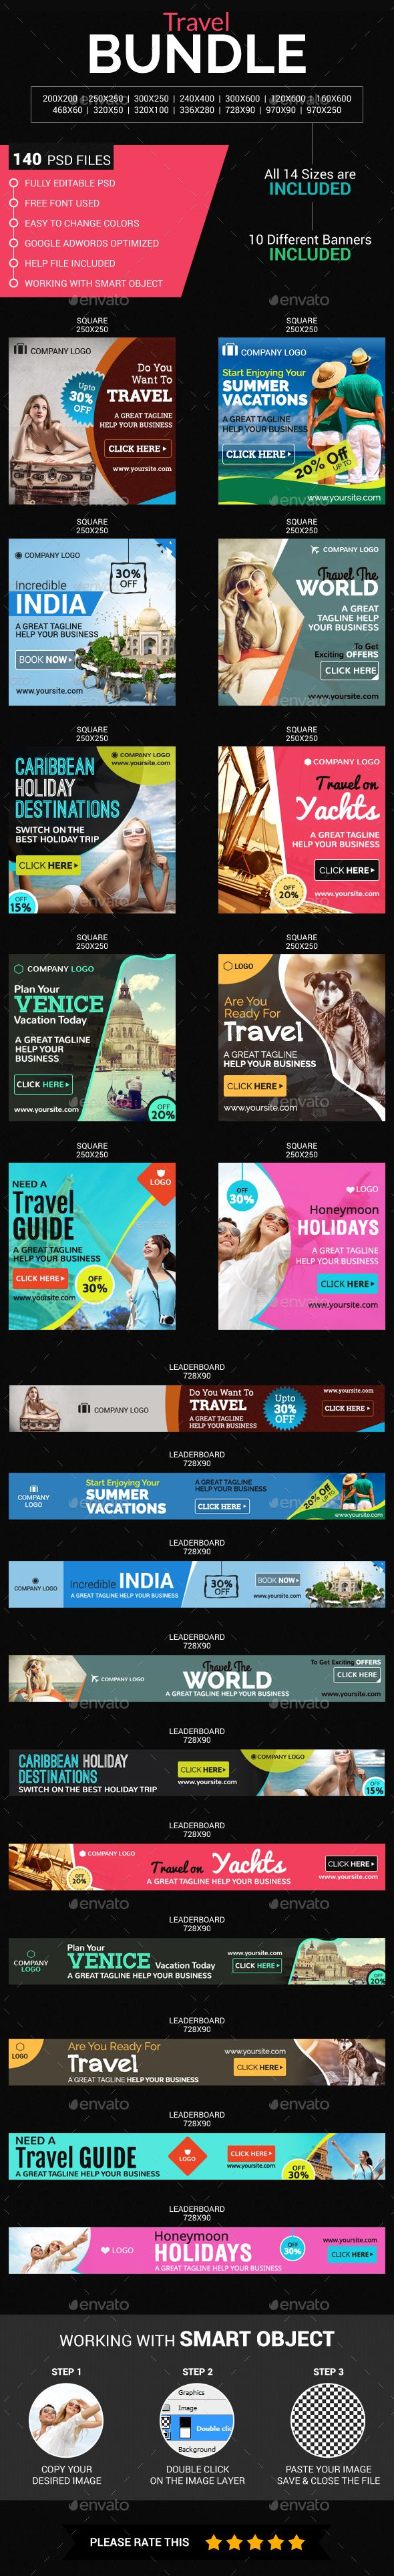 Travel Ads Banner Design Template Bundle (10 Sets) - Banners & Ads Web Element Banner Template PSD. Download here: https://graphicriver.net/item/travel-banner-bundle-10-sets/17725965?s_rank=31&ref=yinkira